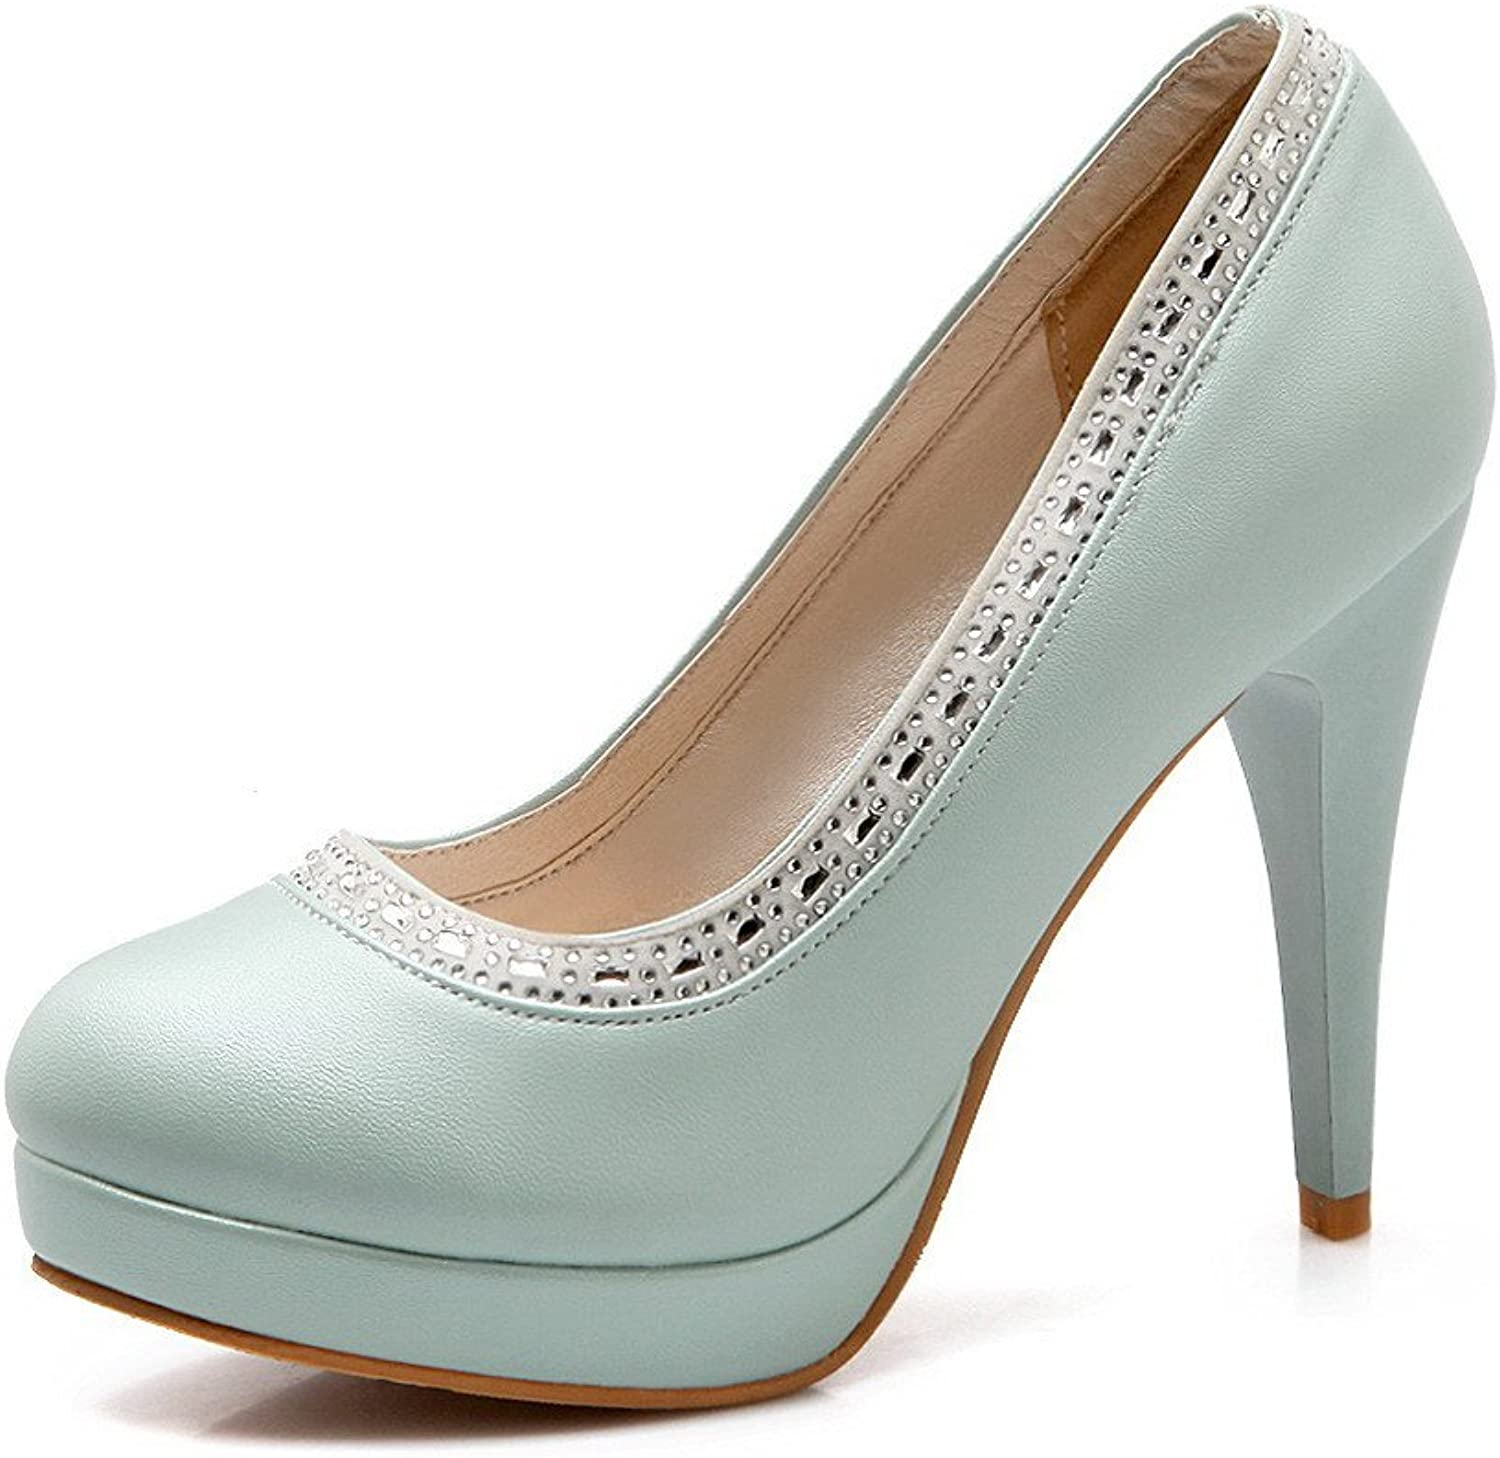 WeenFashion Women's High-Heels Soft Material Solid Pull-on Round Closed Toe Pumps-shoes